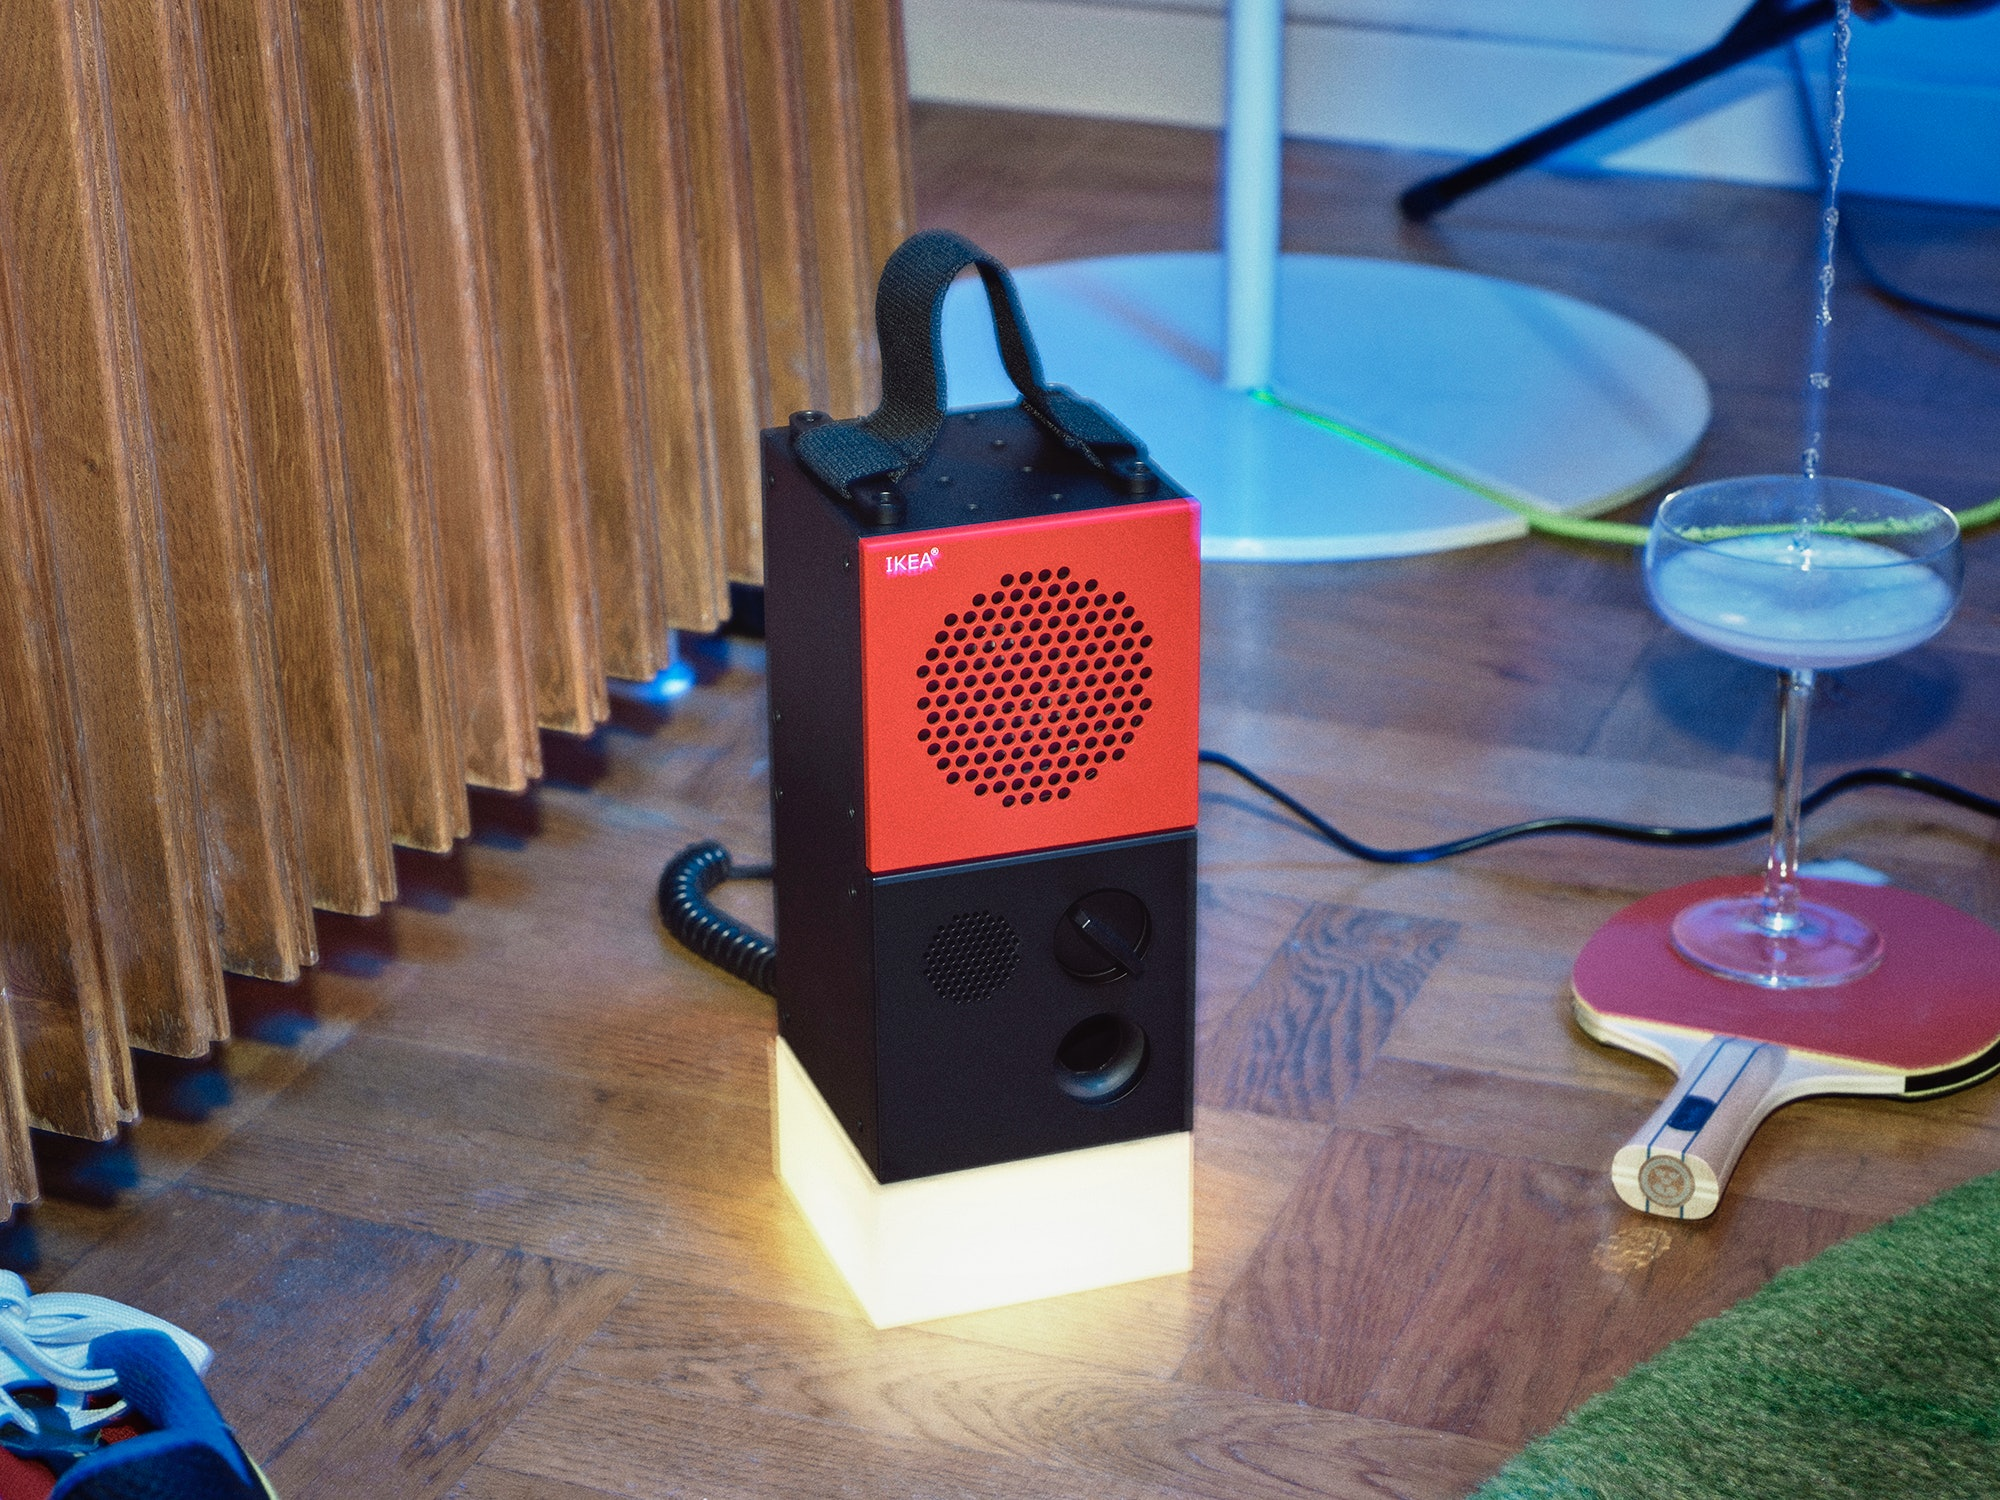 IKEA and Teenage Engineering's party-focused collection of tech and homeware is now available